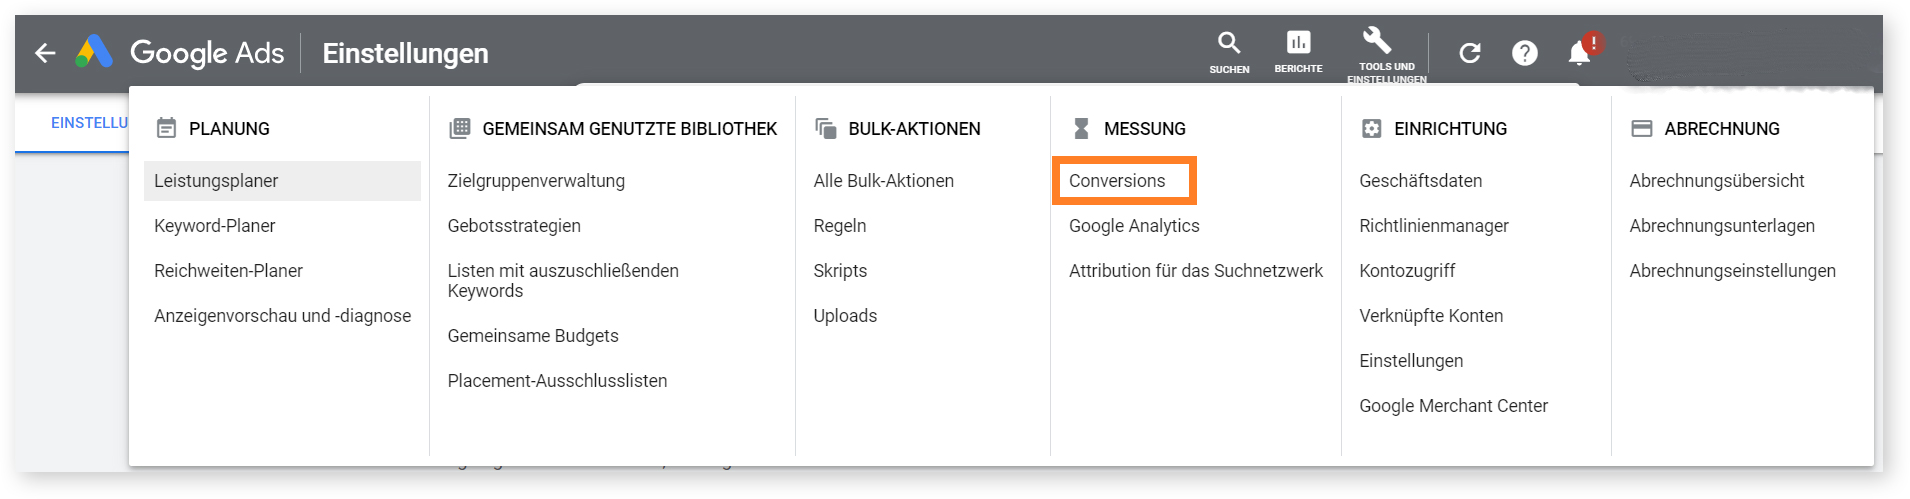 Erstellung einer neuen Сonversion-aktion in Google Ads